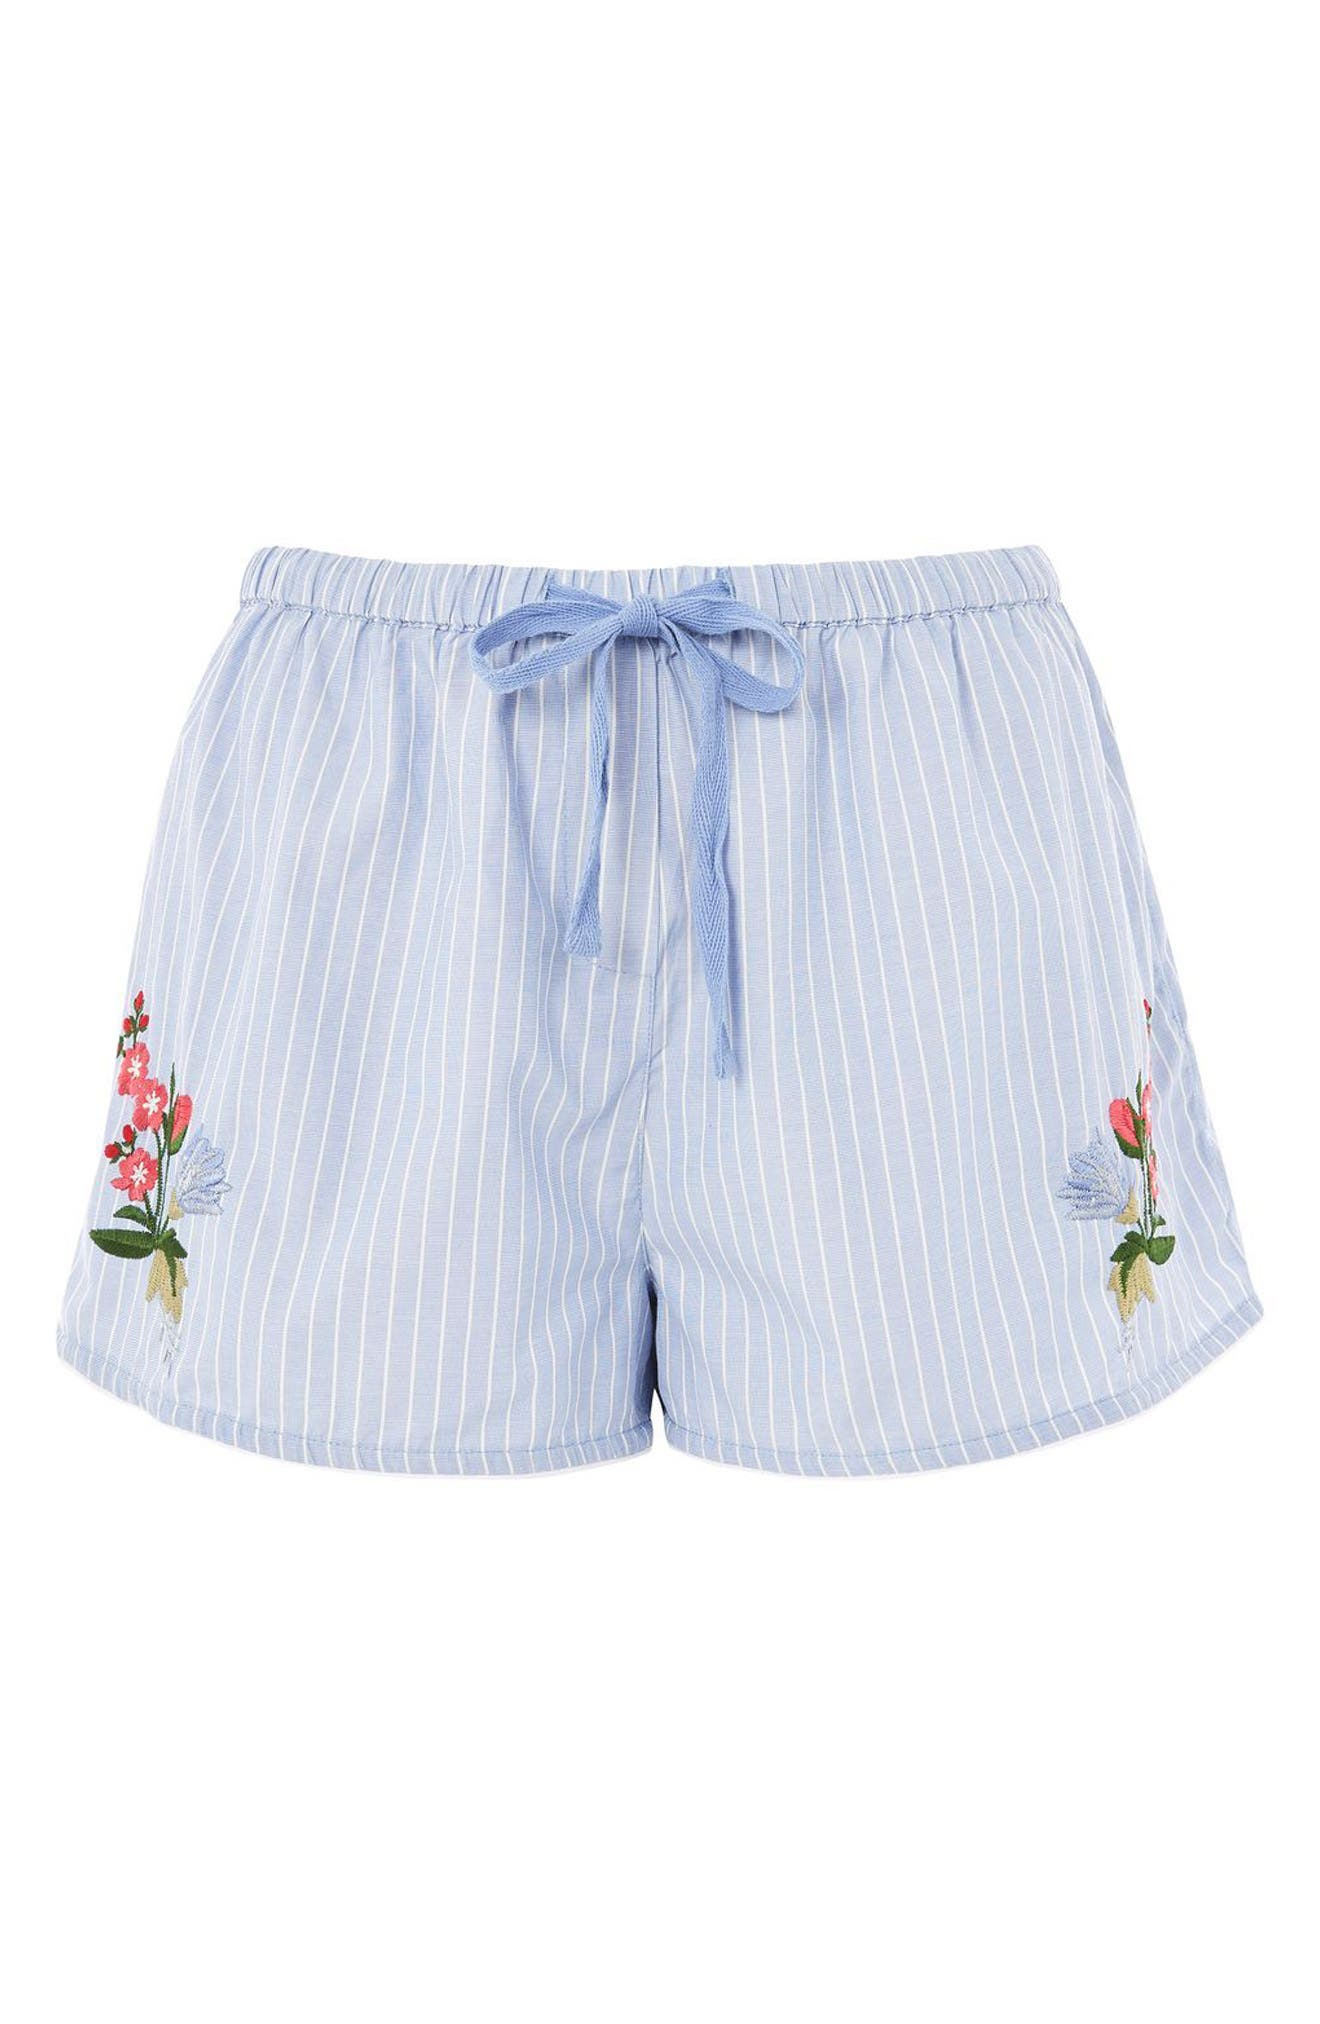 Embroidered Lounge Shorts,                             Main thumbnail 1, color,                             Blue Multi